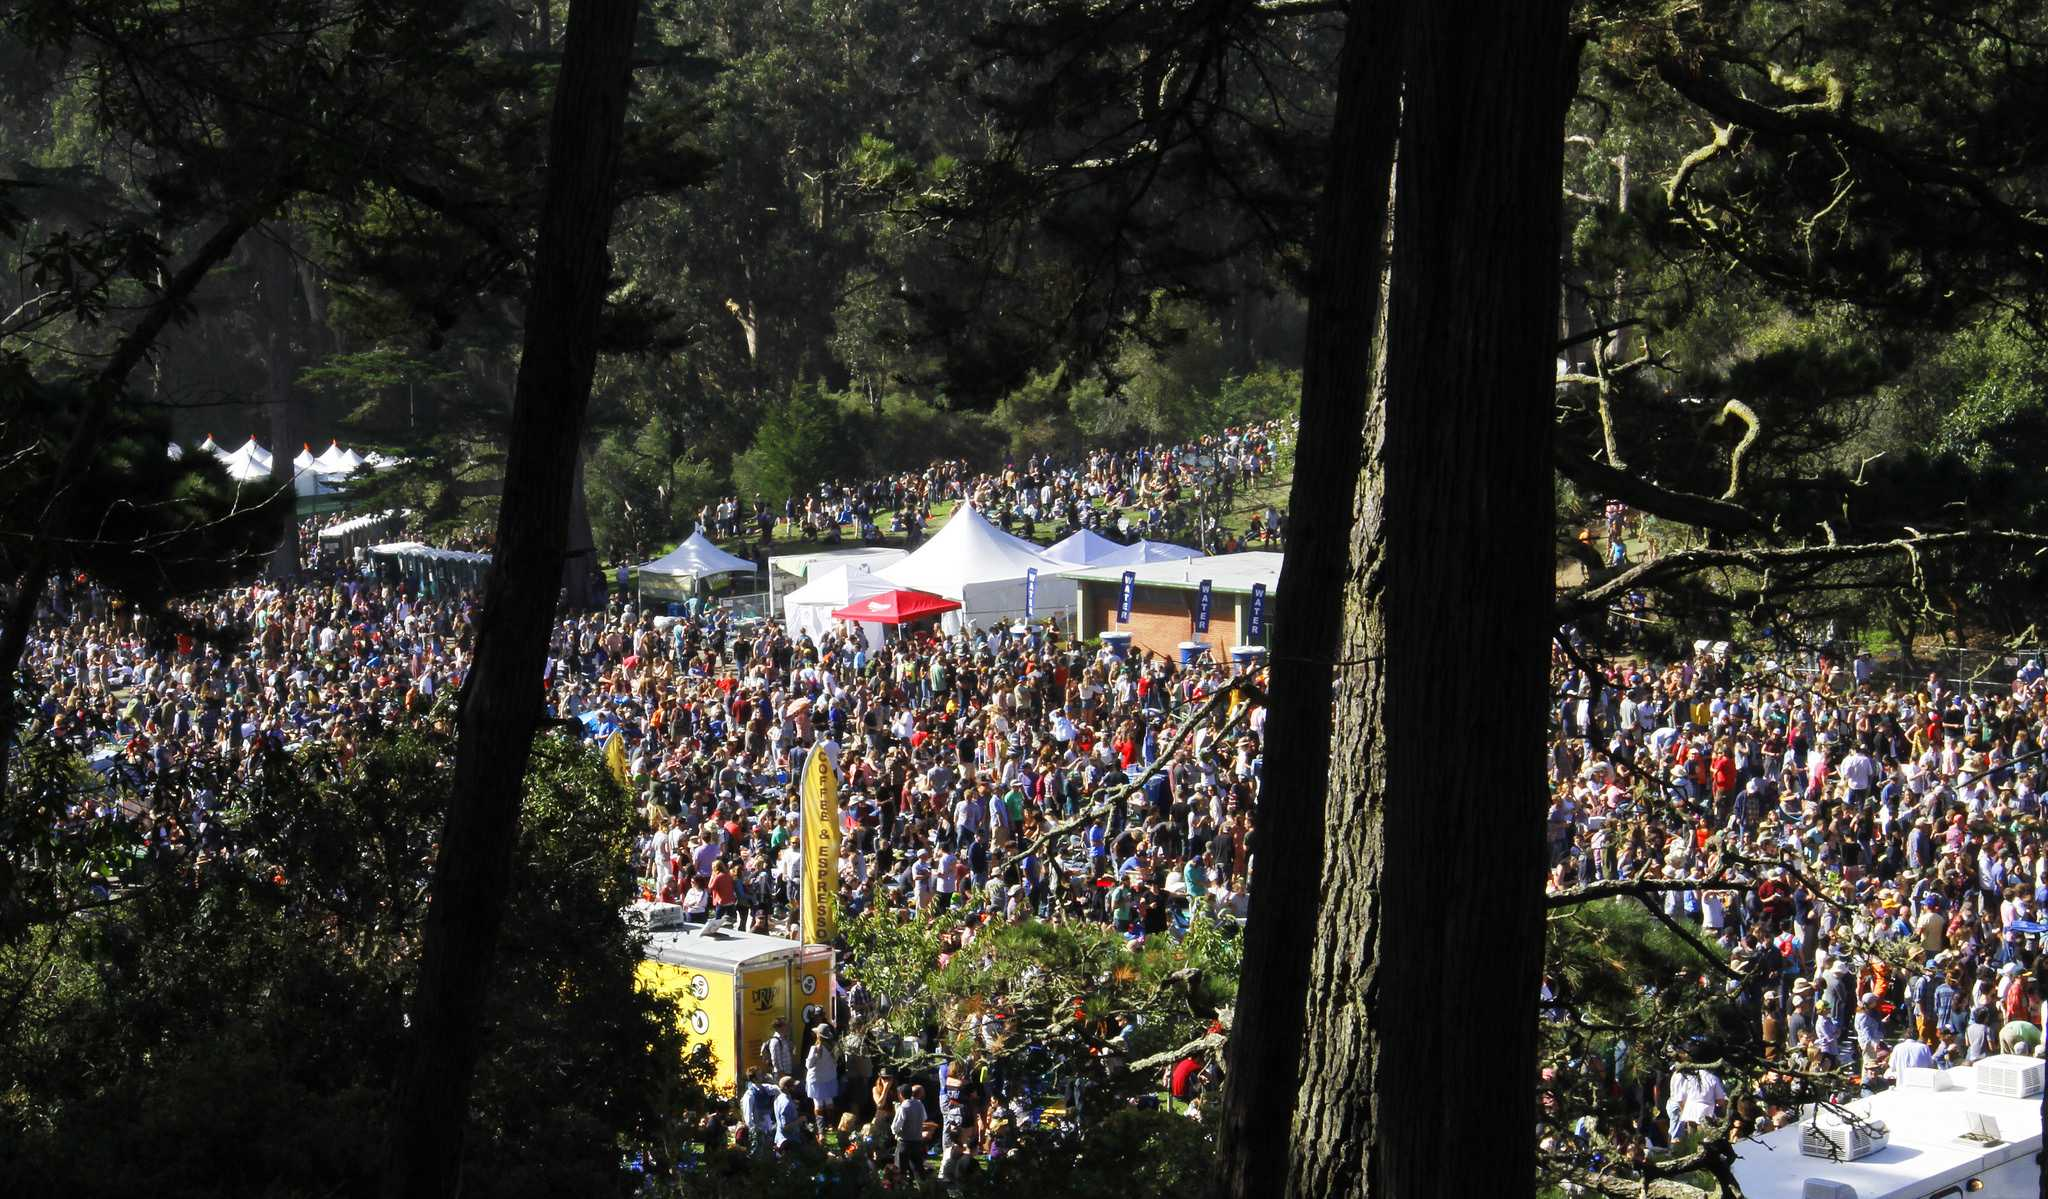 A birds eye view of Hardly Strictly Bluegrass Festival in Golden Gate Park Saturday, Oct. 3, 2015. (Angelica Ekeke/Xpress)